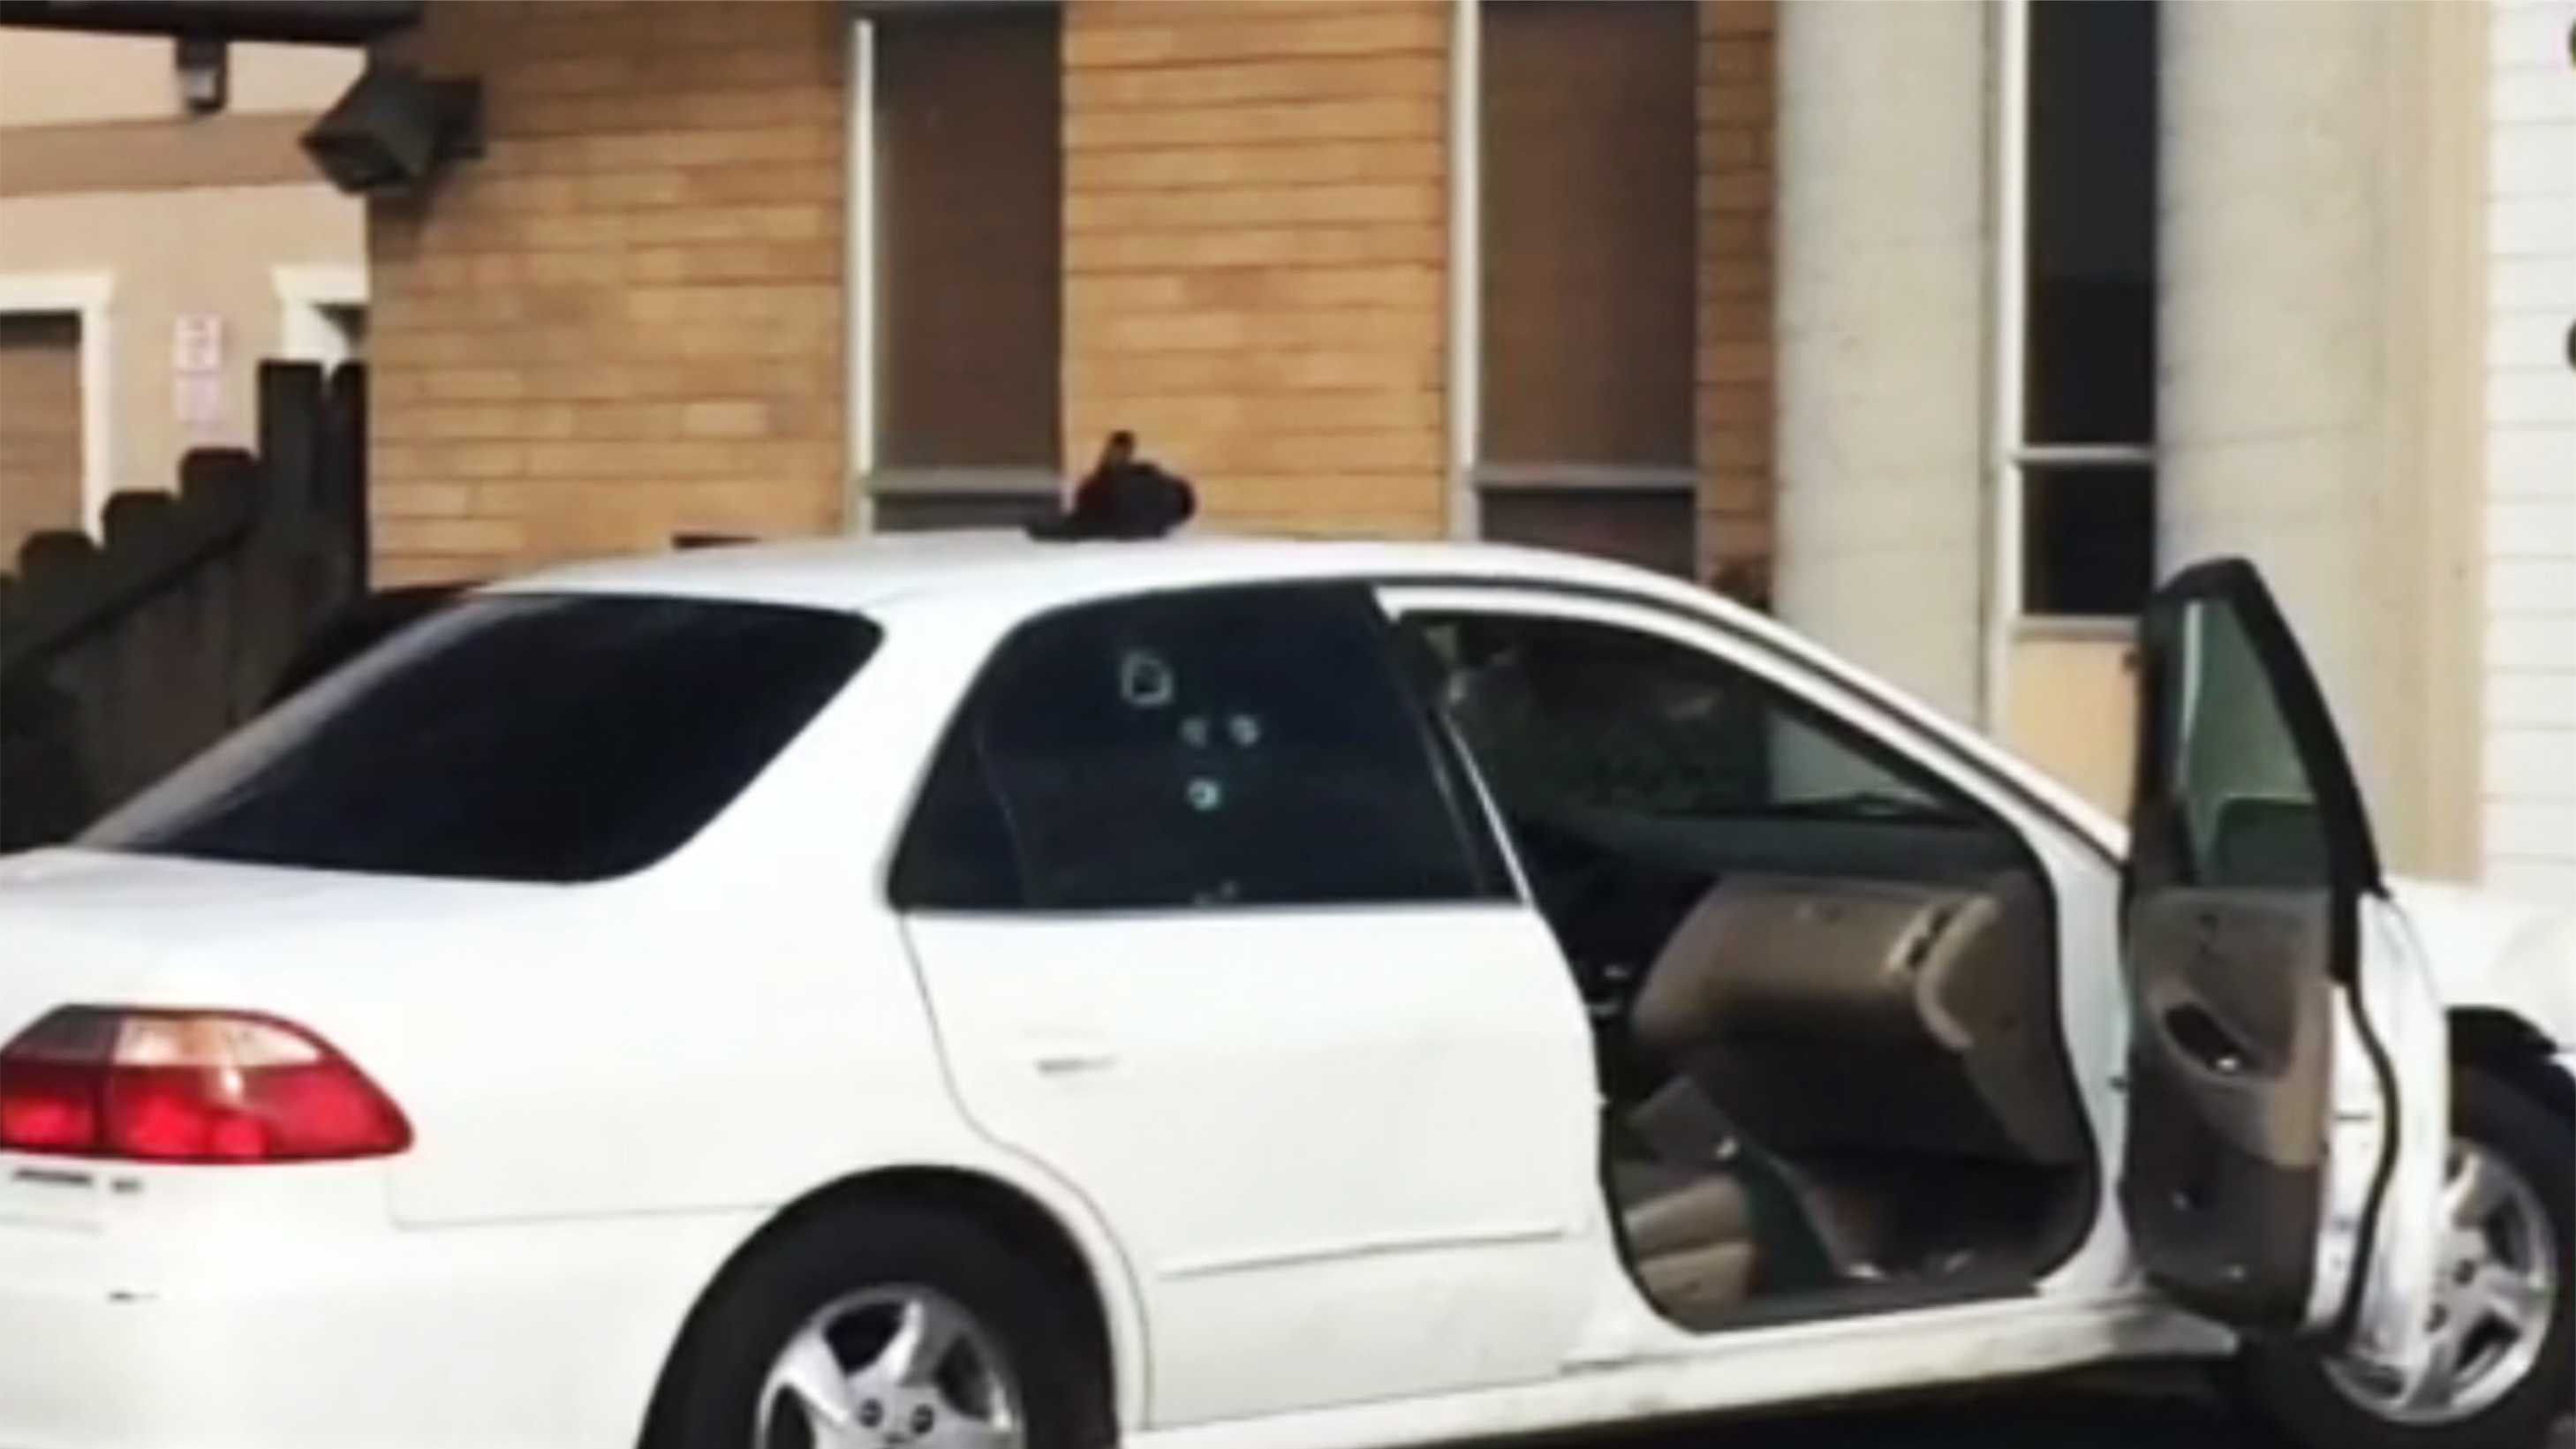 Bullet holes are seen on the victim's car.